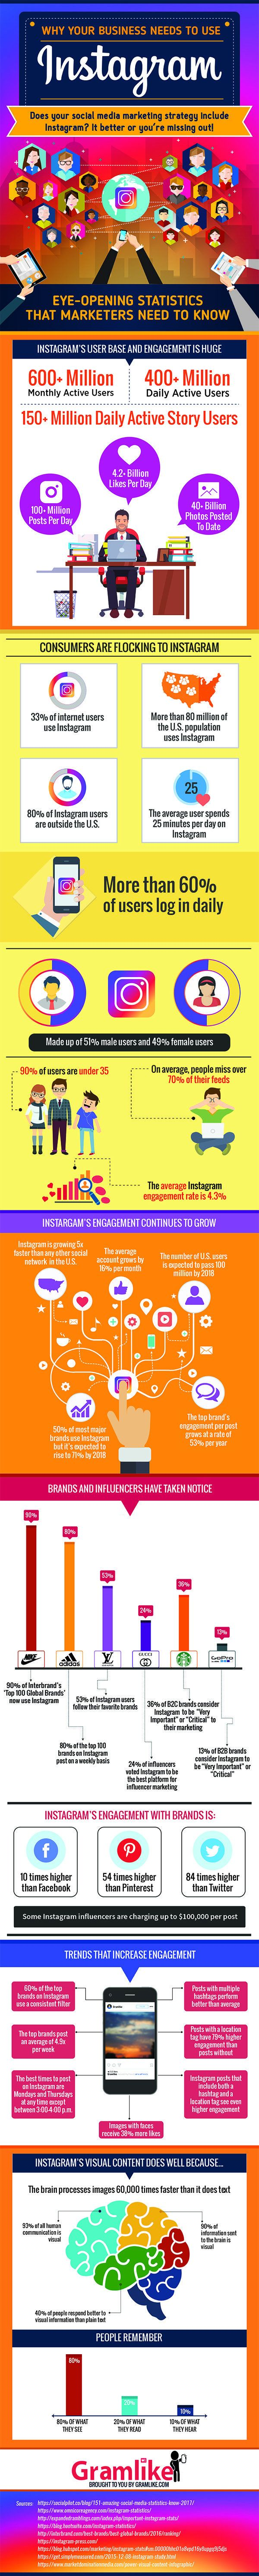 Why Businesses Should Use Instagram for Marketing   Social Media Infographic